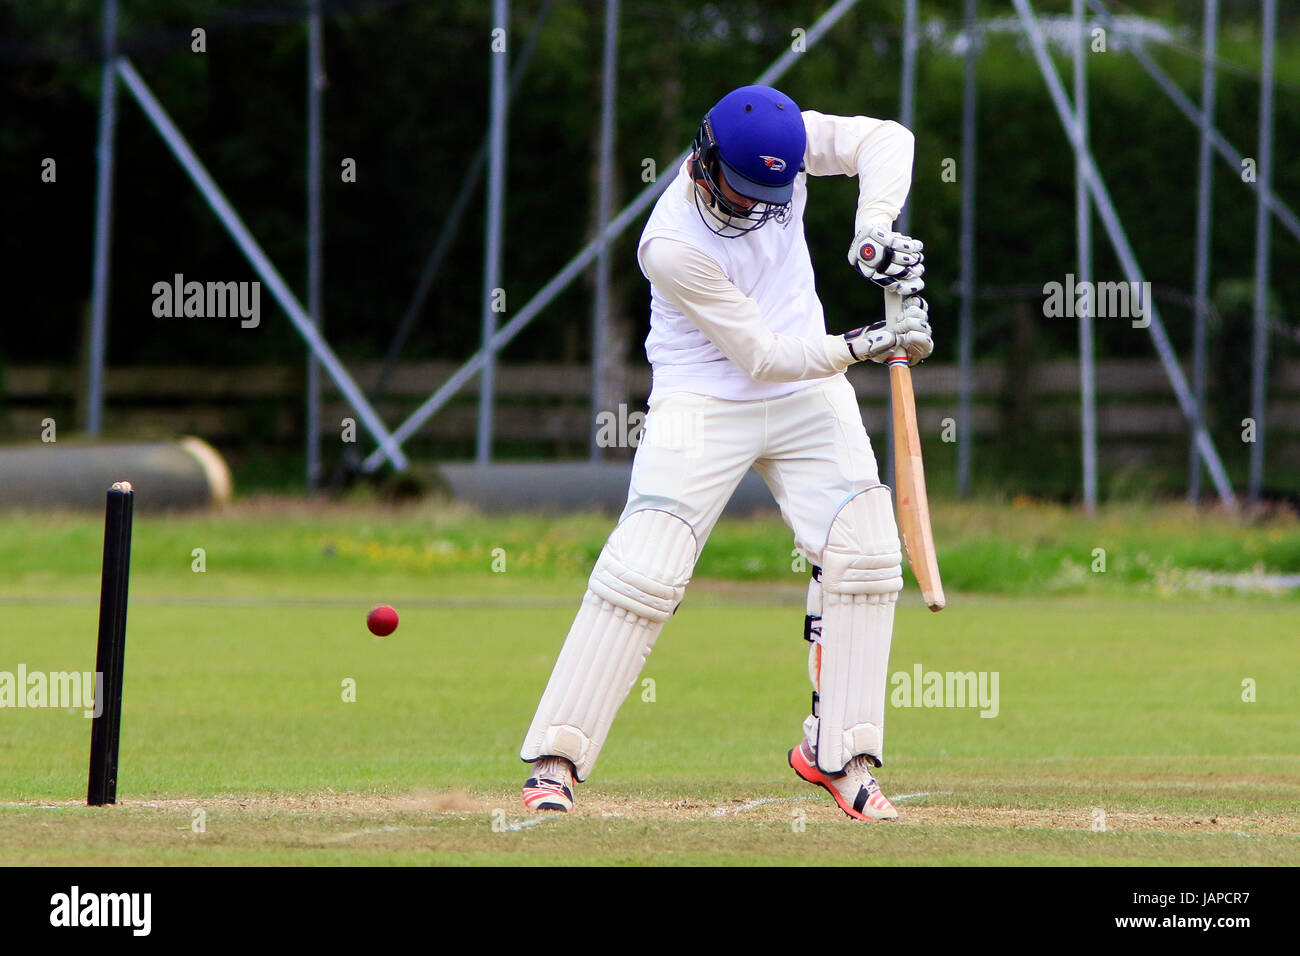 Ayr, Scotland, UK. 7th June, 2017. On the first day of play in the ICC Intecontinental Cup, Scotland played against - Stock Image